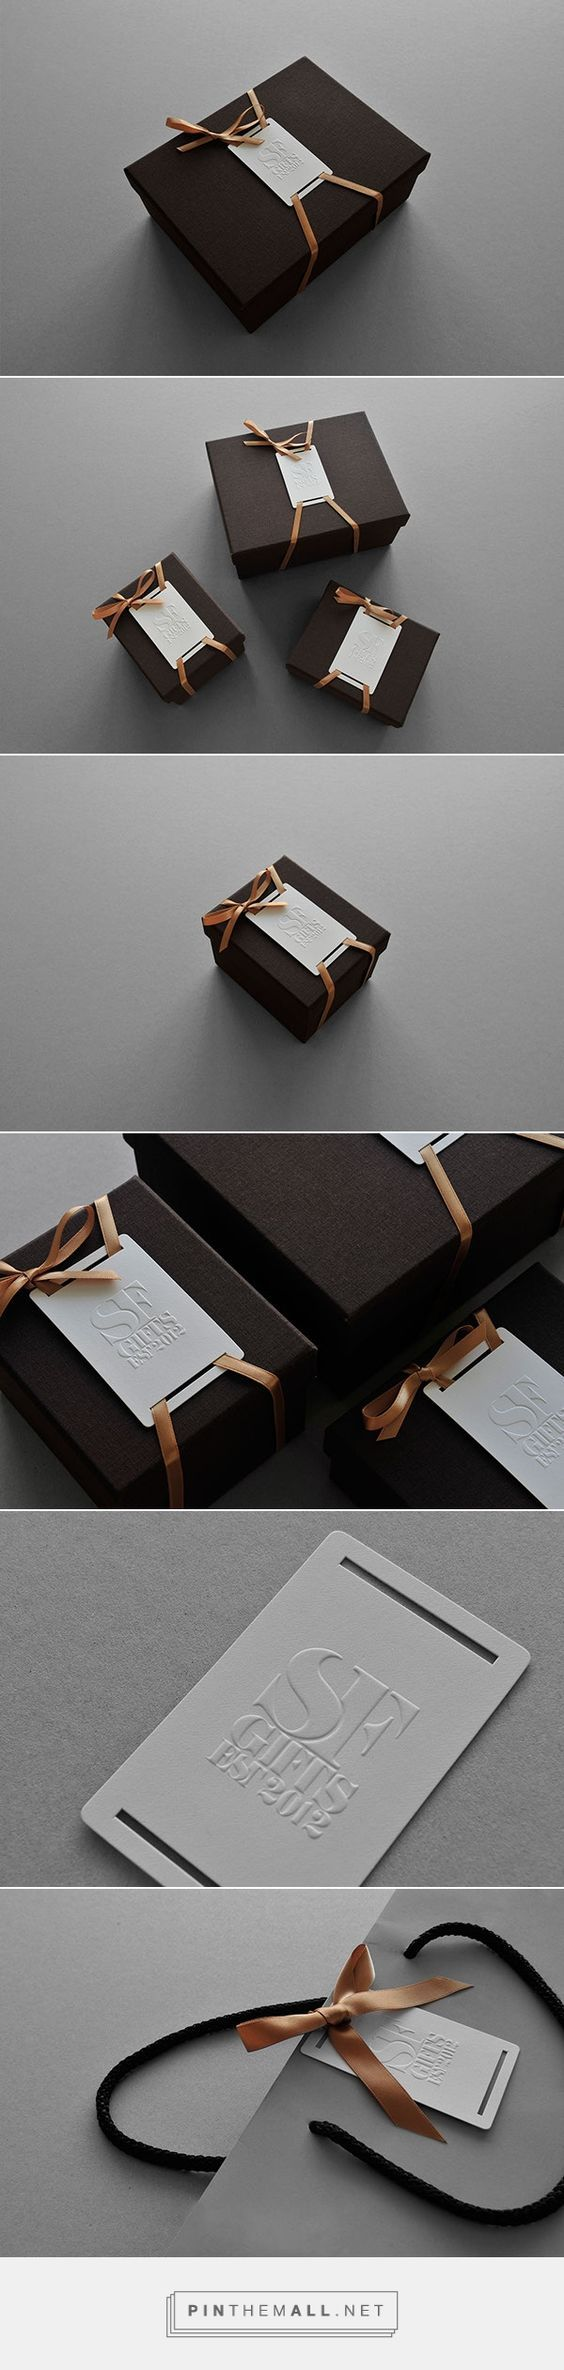 SF Gifts on Behance: